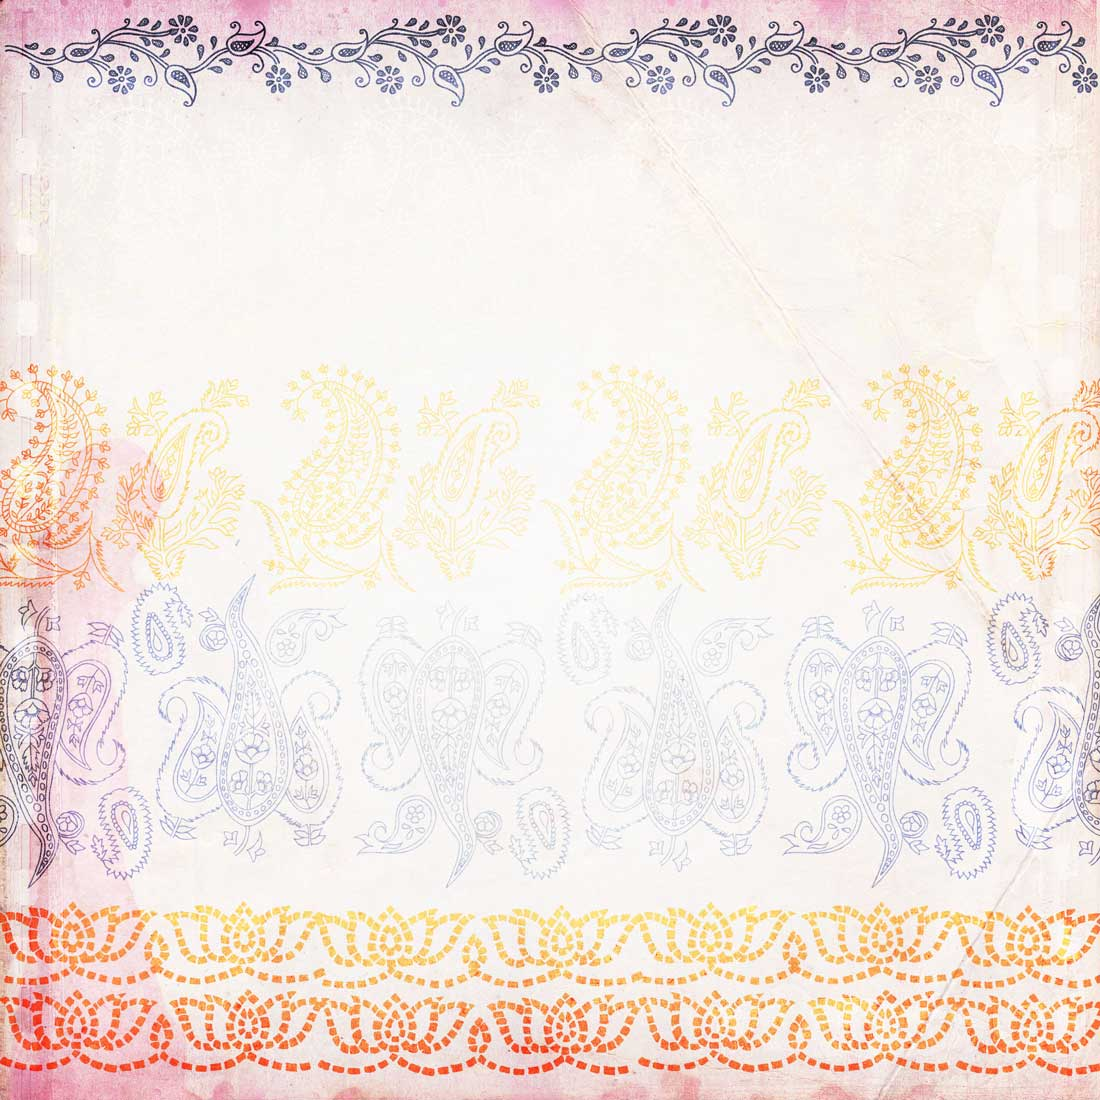 nbk-colors-of-india-papers-01